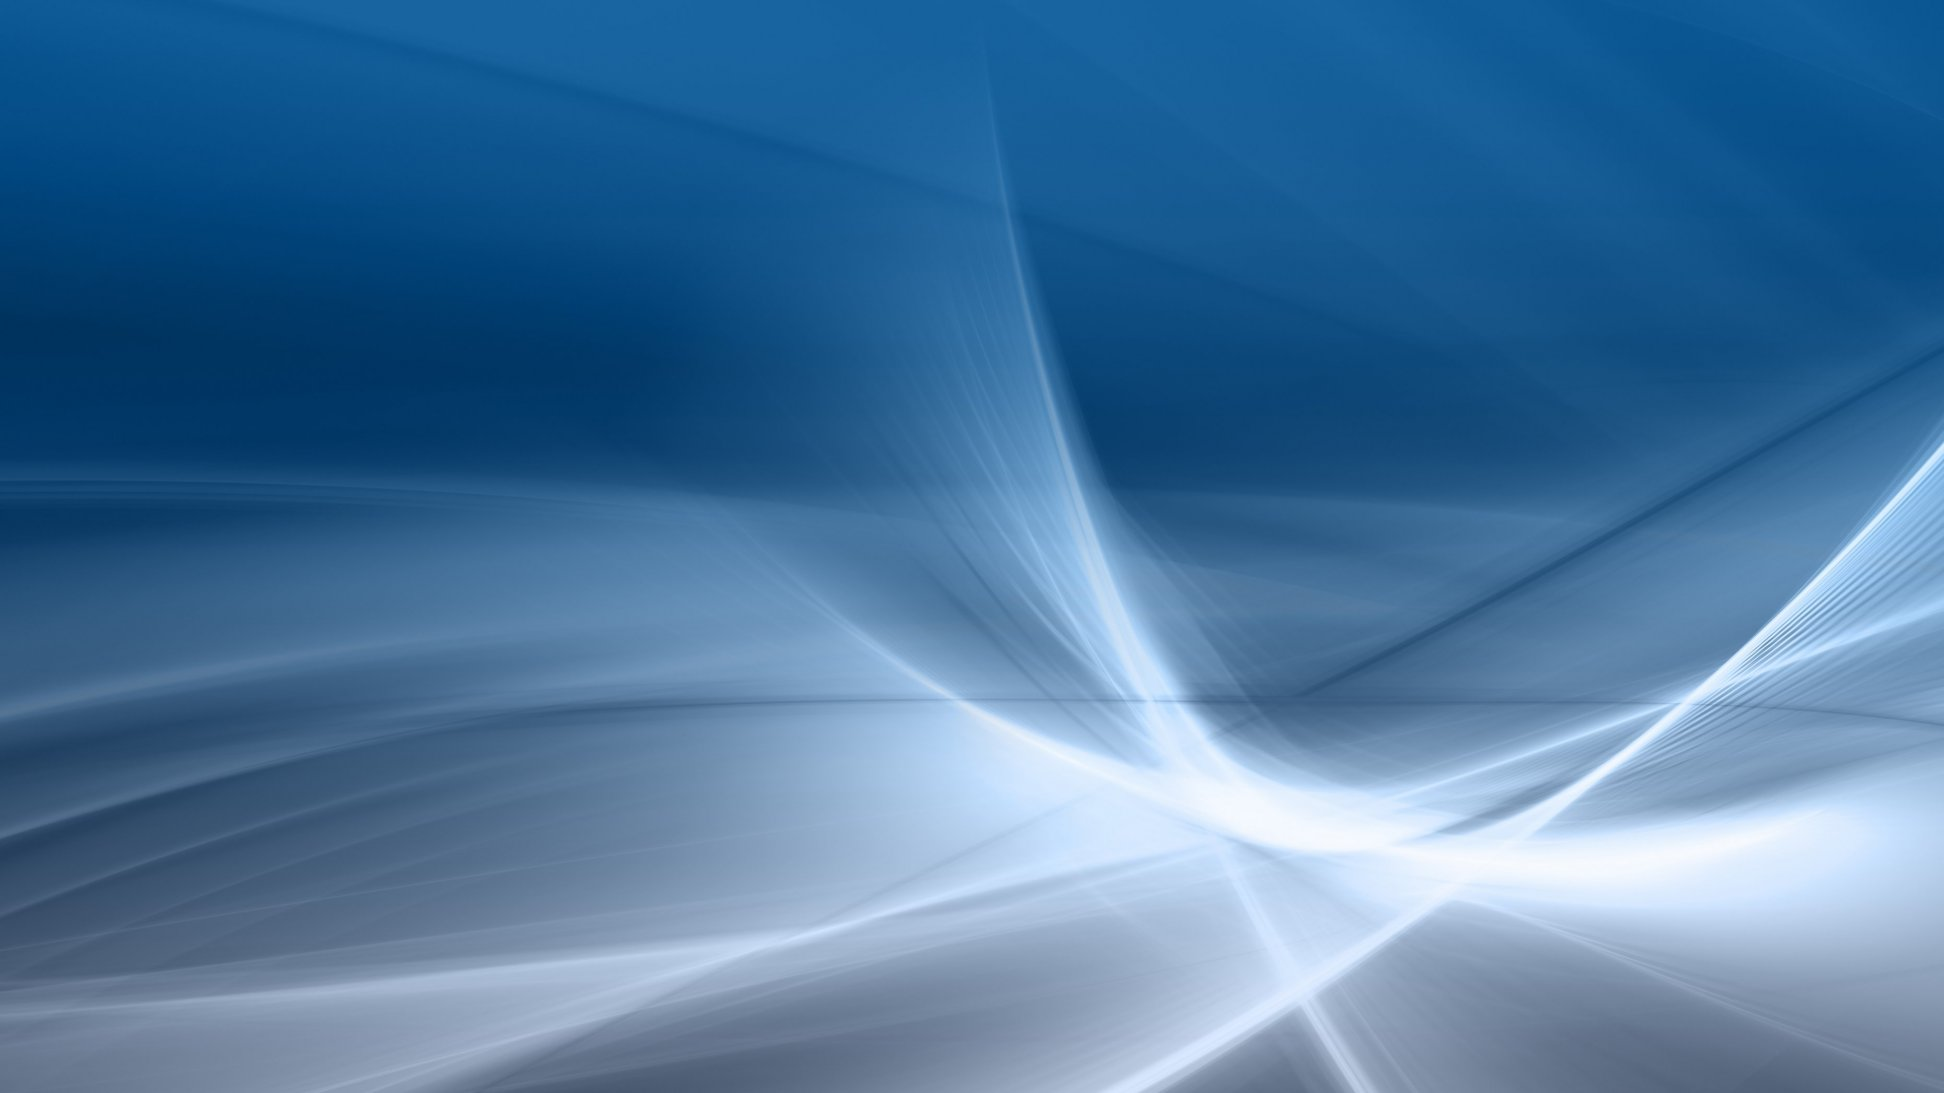 Image abstract blue background